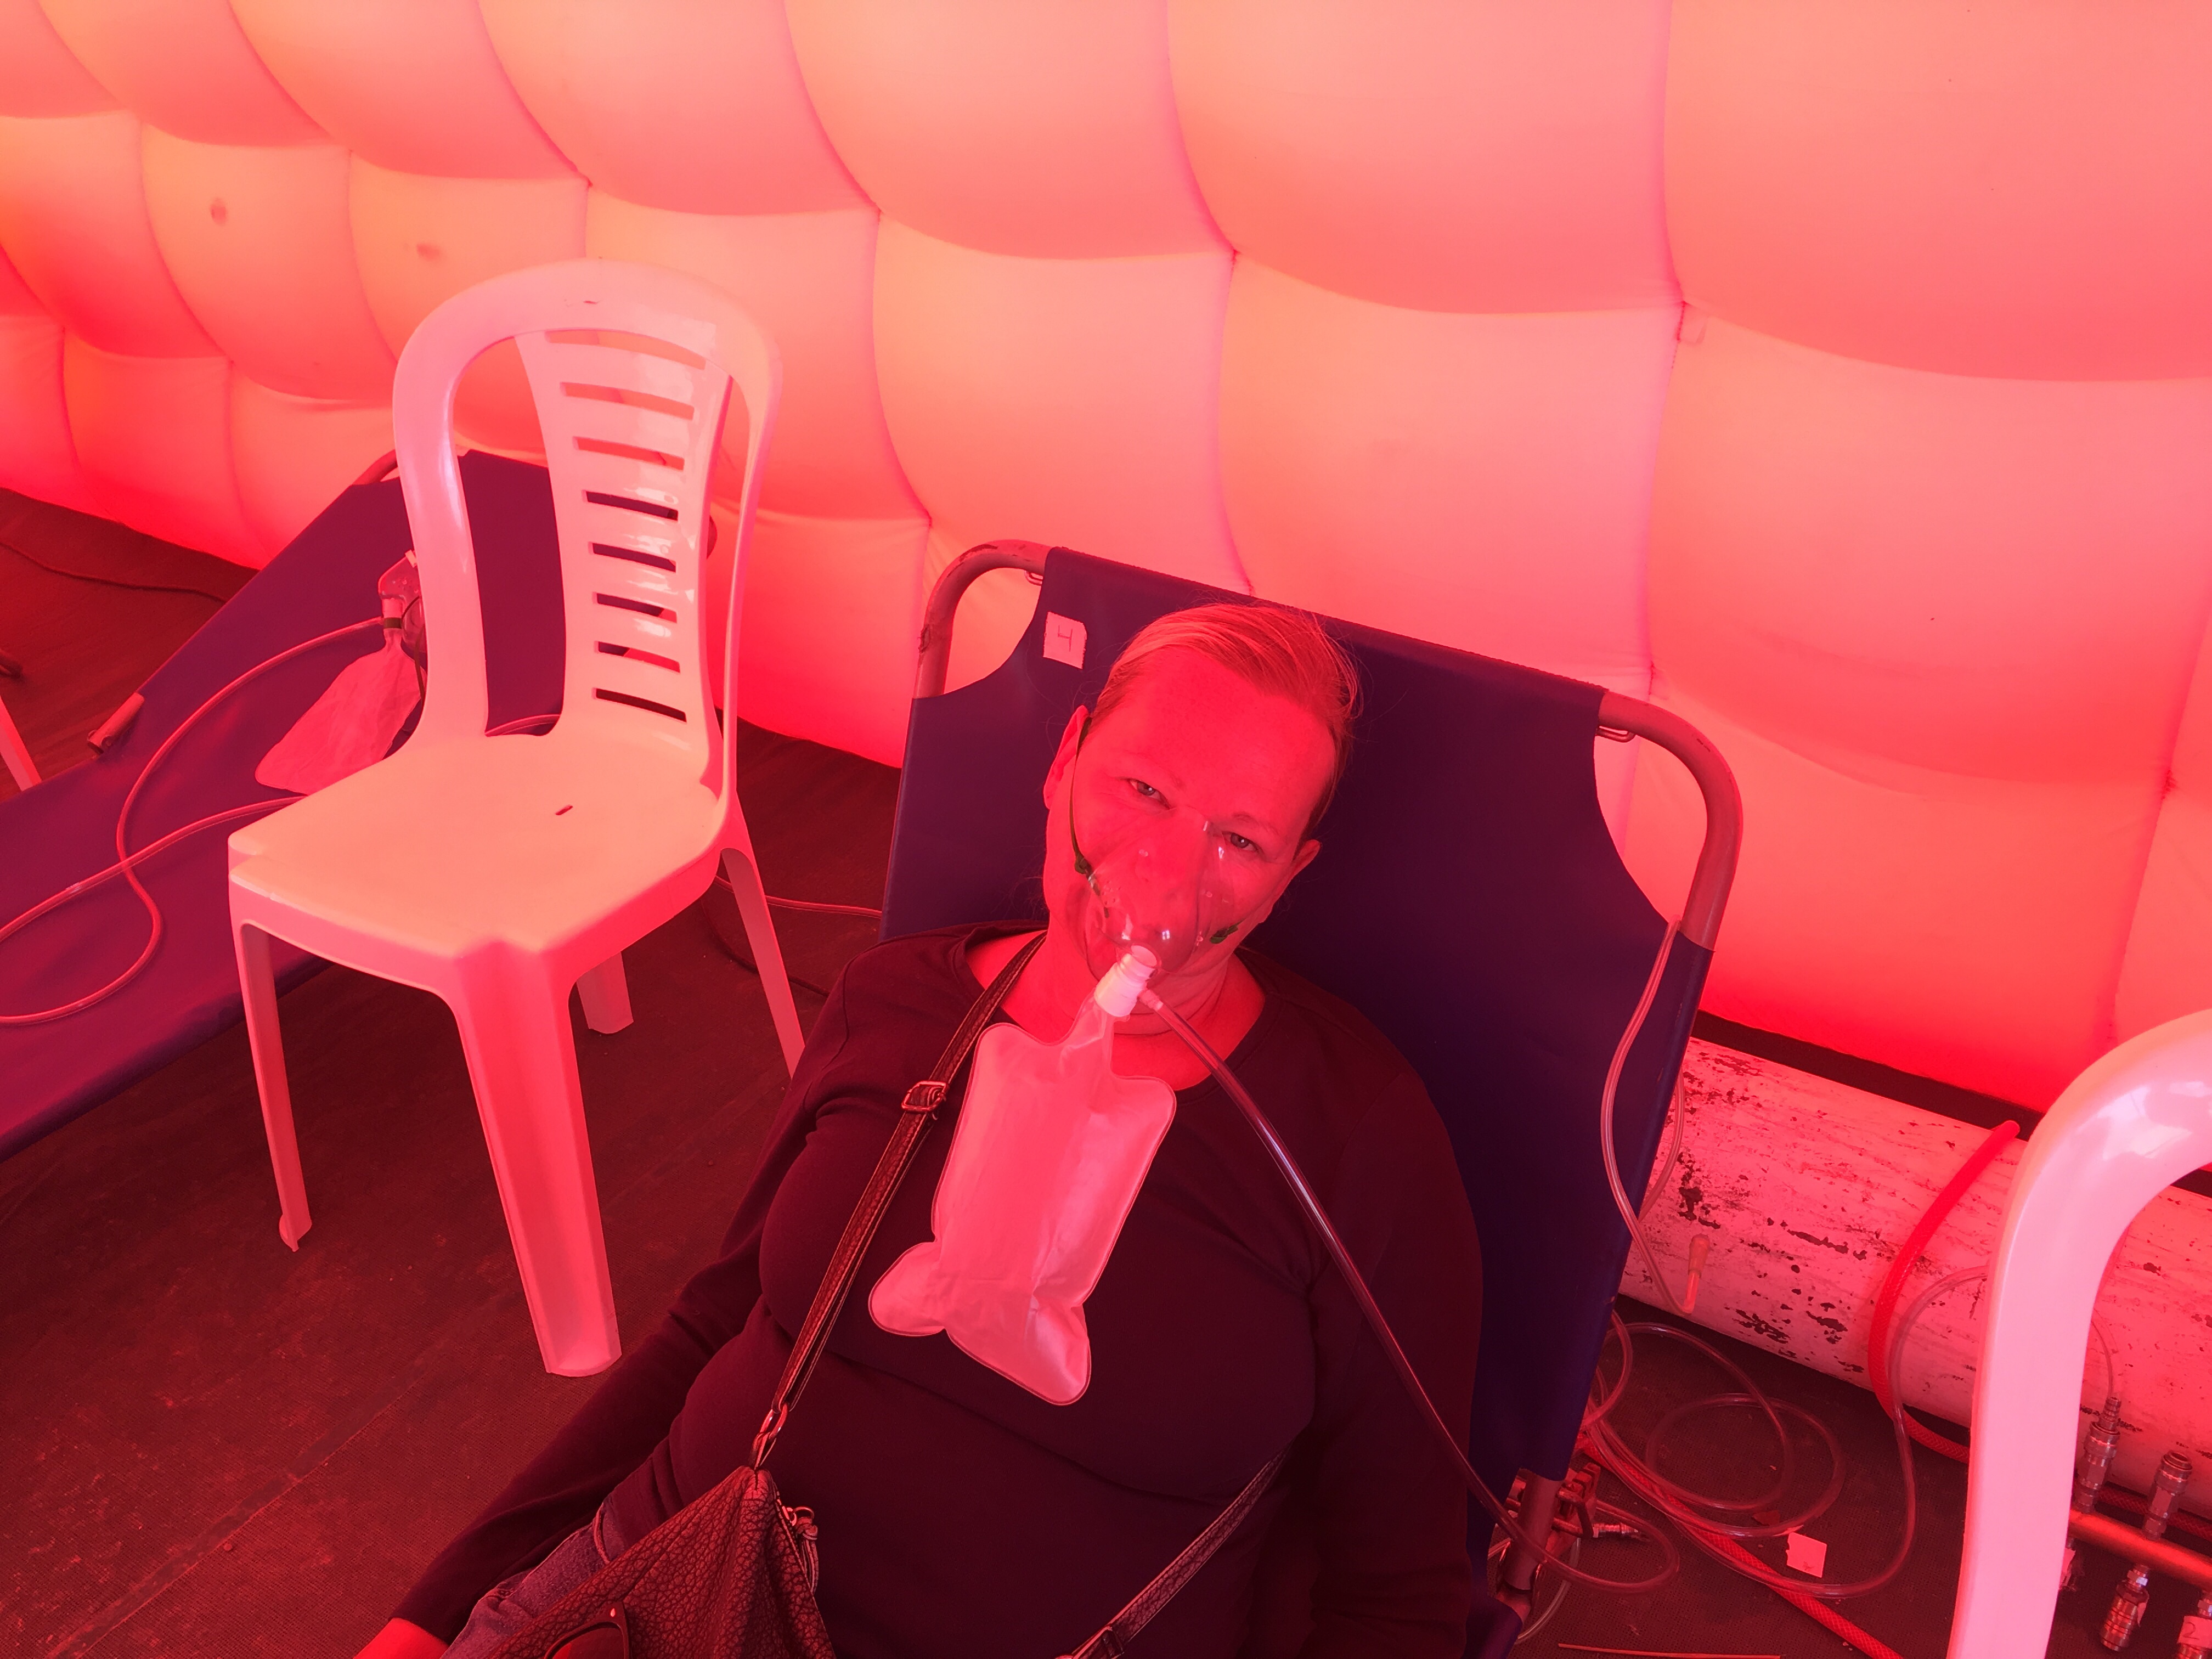 Cate resting with an oxygen mask on her face at Paso Jama, Argentina after suffering side effects from altitude sickness.